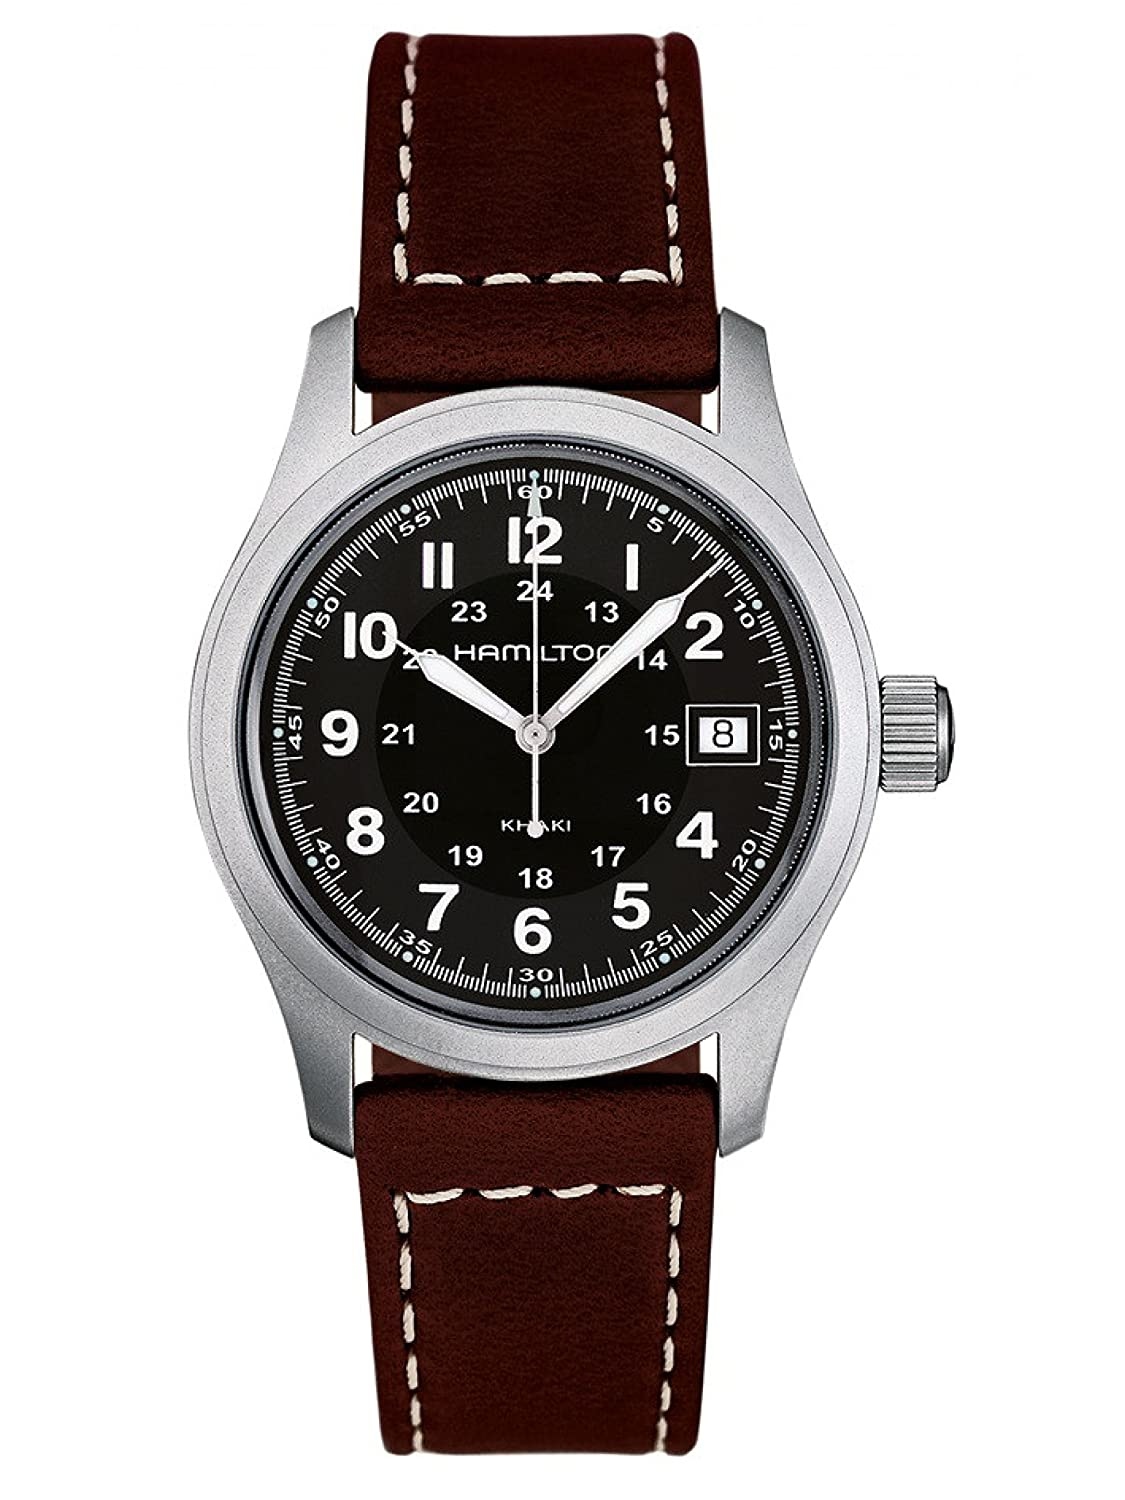 Amazon.com: Hamilton Men's H68411533 Khaki Field Black Dial Watch: Hamilton:  Watches